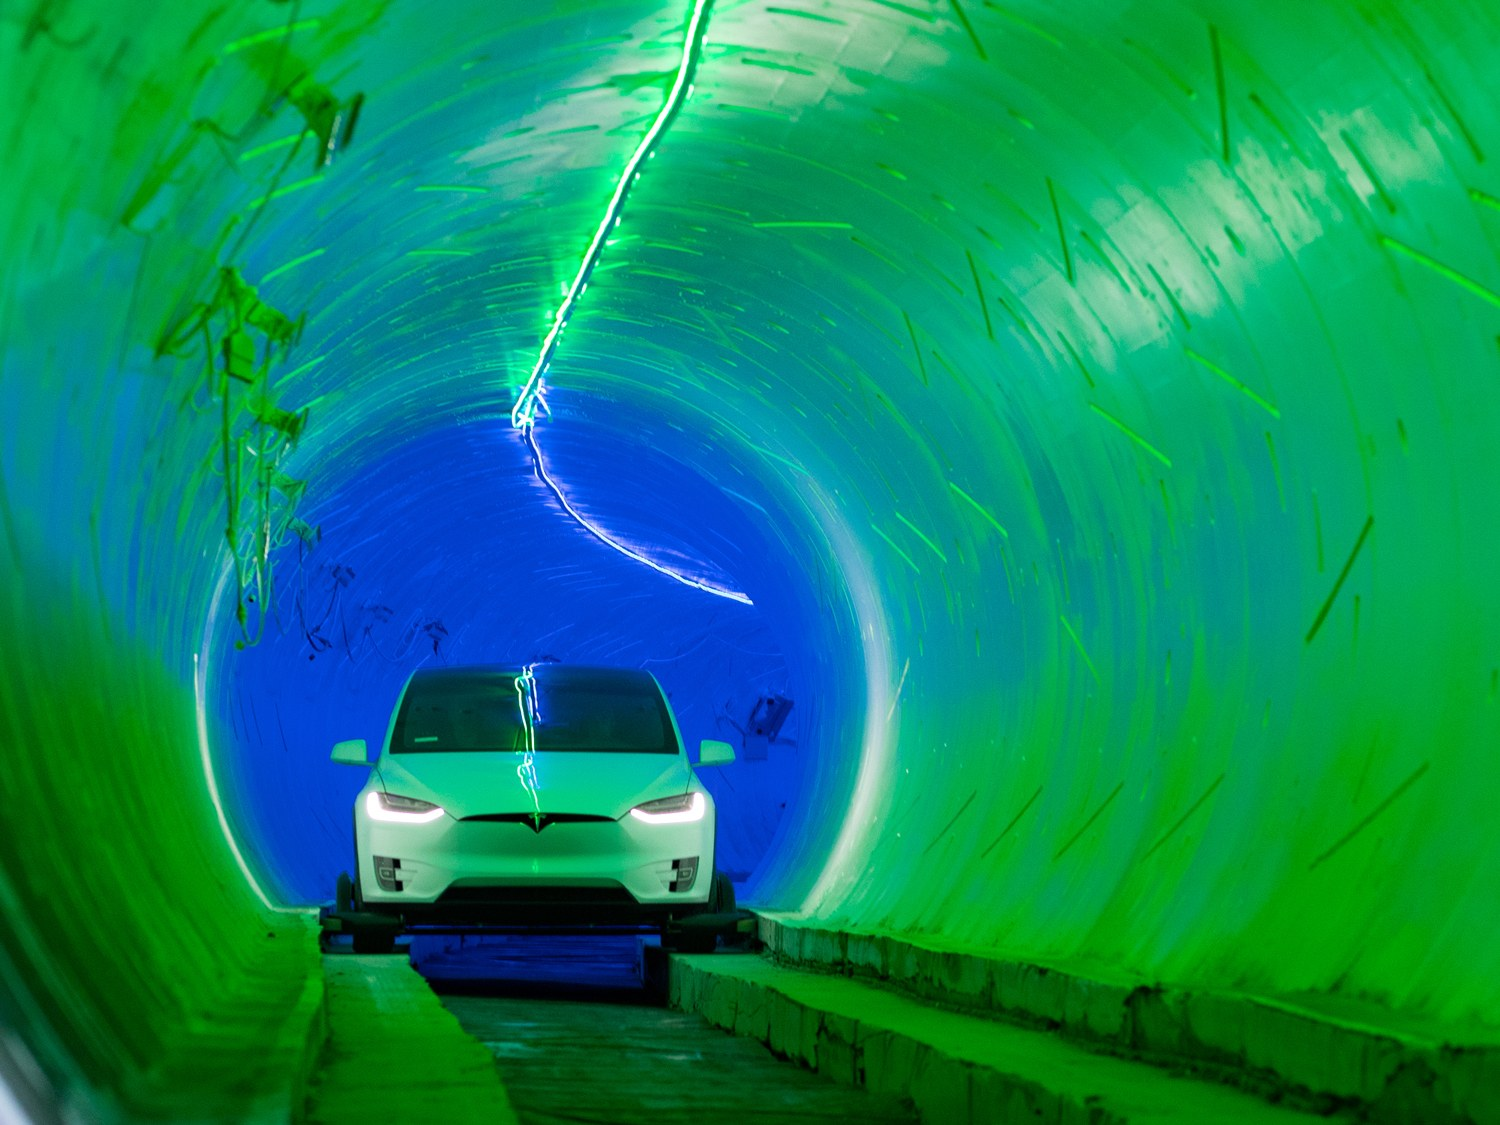 Musk's love tunnel proves anti-climactic